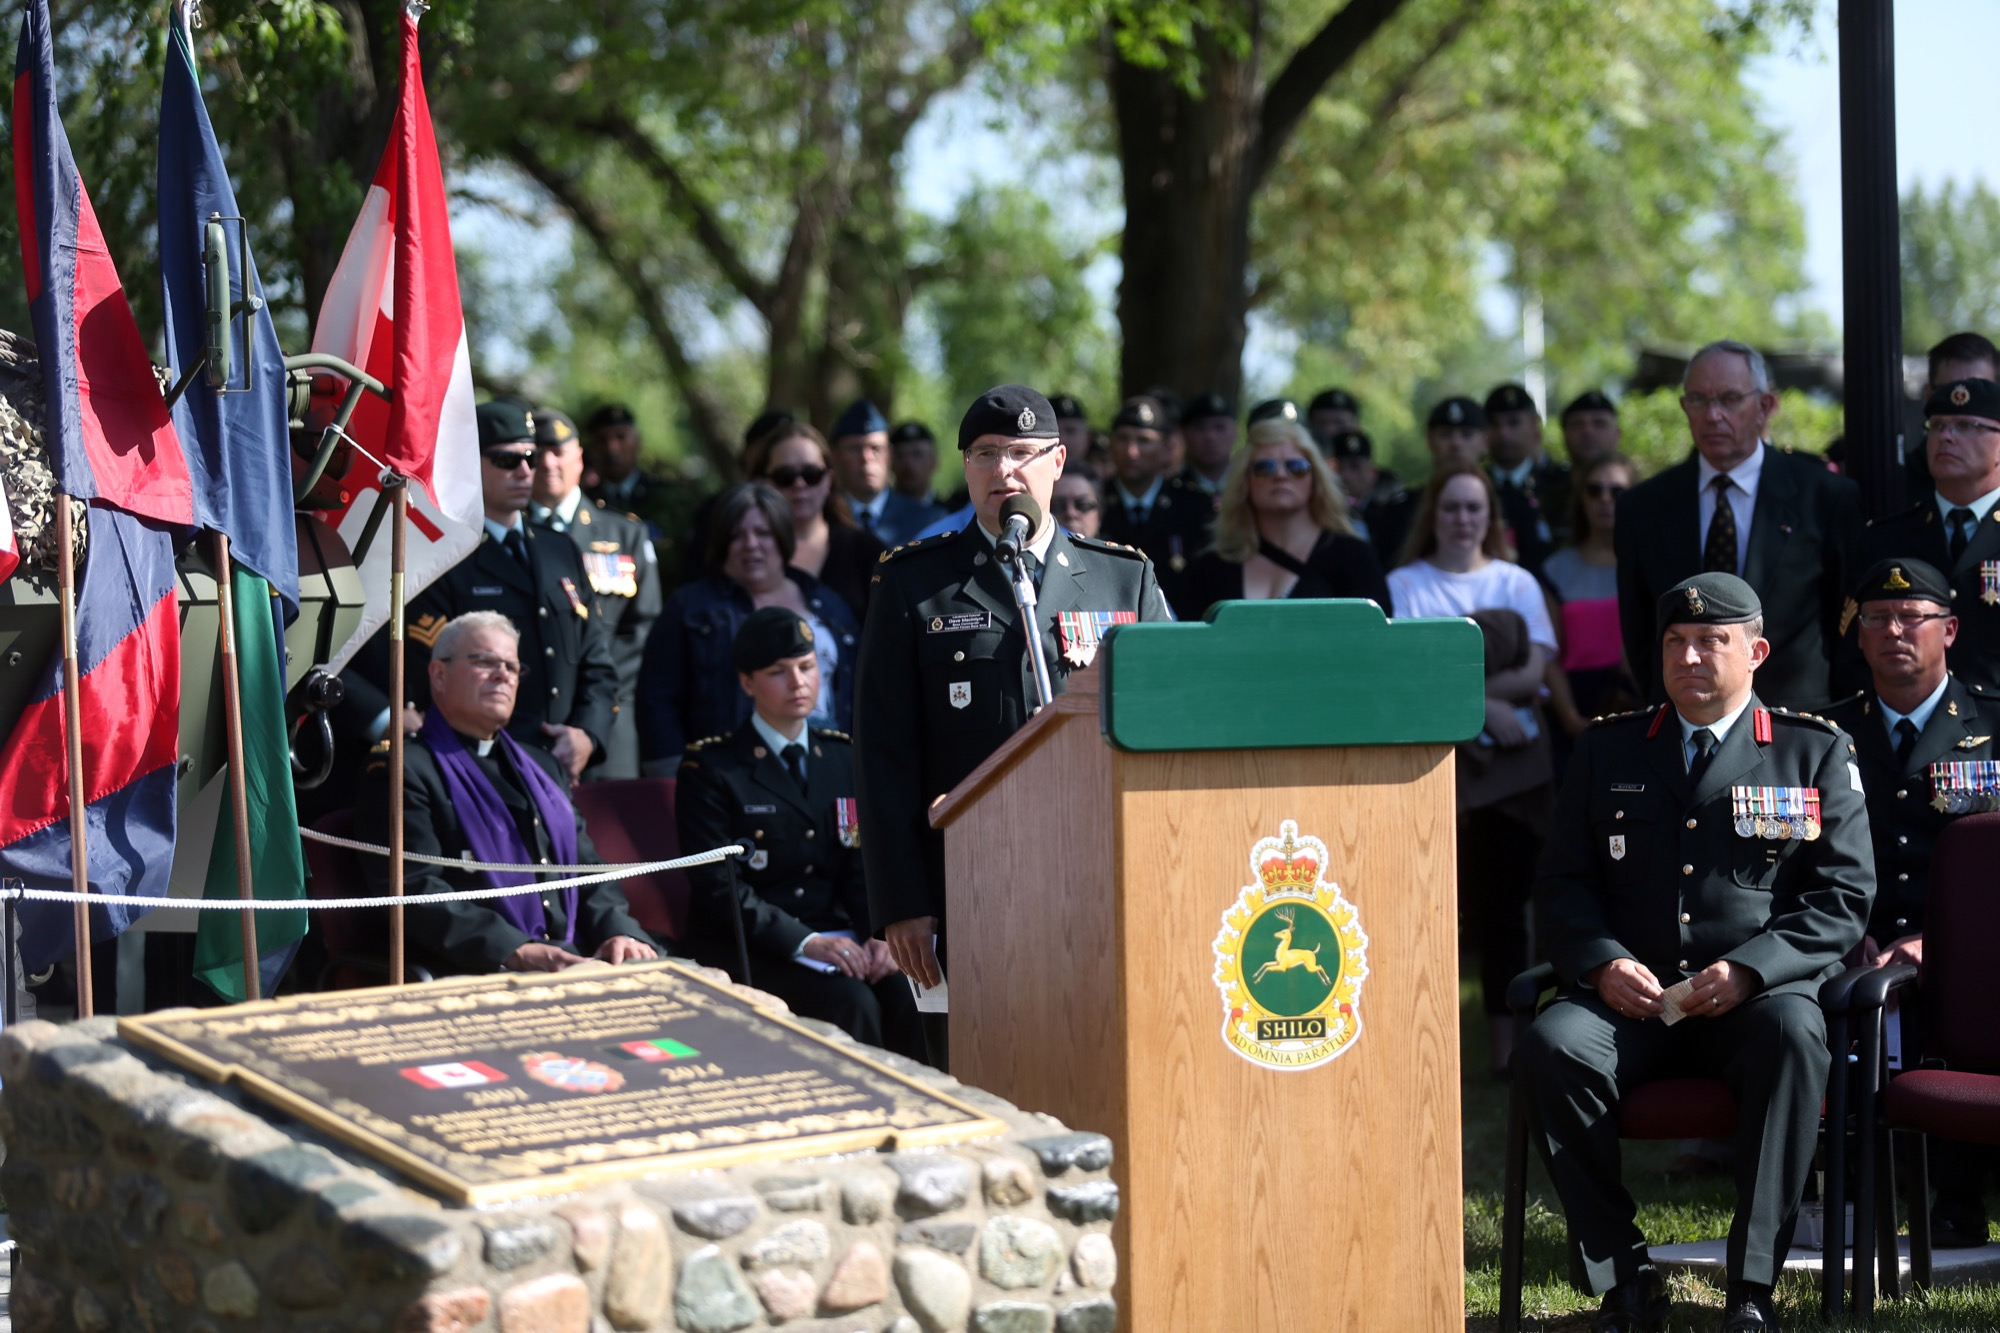 CFB Shilo commander Lt.-Col. Dave MacIntyre addresses the audience at Tuesday's dedication ceremony for the new Afghanistan Memorial at Canoe River Memorial Park.